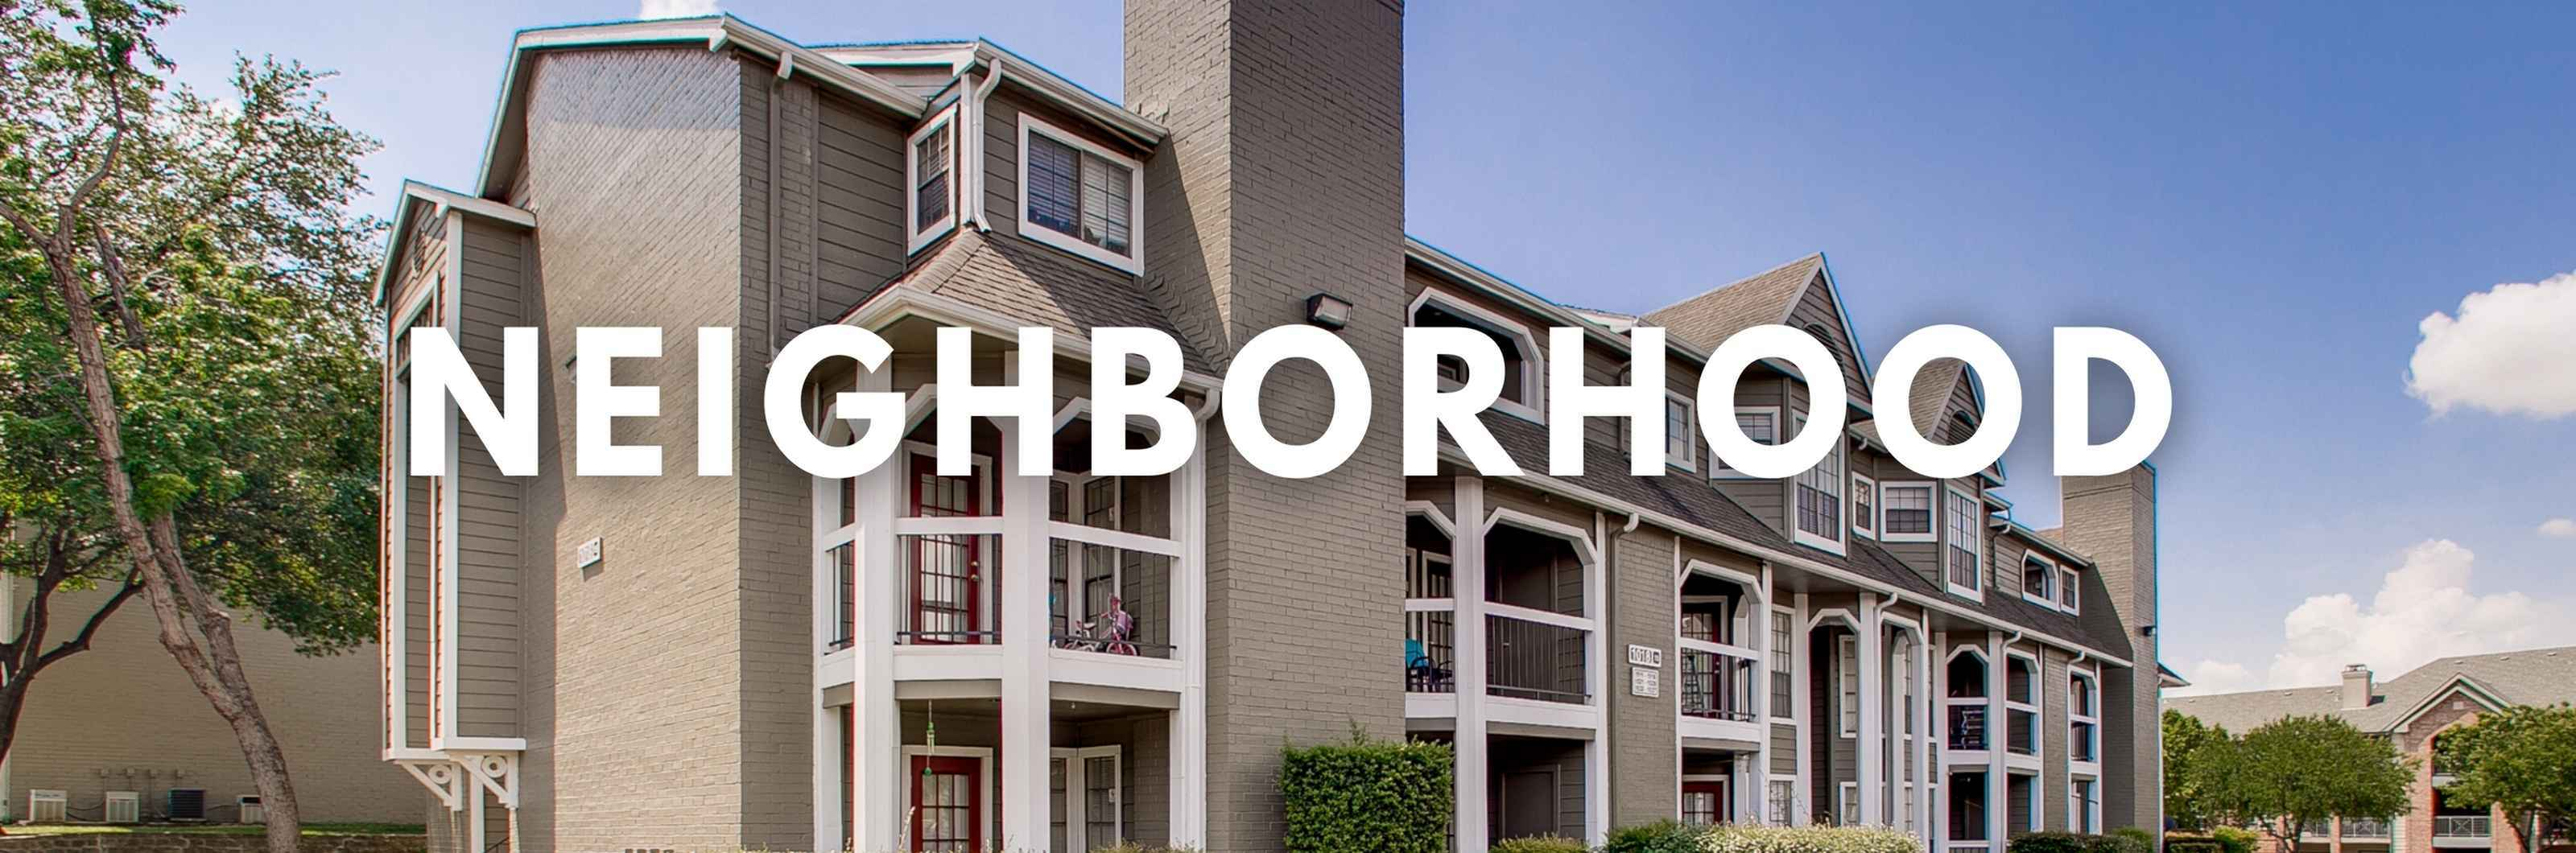 Locations Page Banner The Arbors of Las Colinas provides exceptional access to dining, entertainment, and outdoor recreation. Discover nearby destinations, including top restaurants, popular trails, and gorgeous parks - all within a short drive.